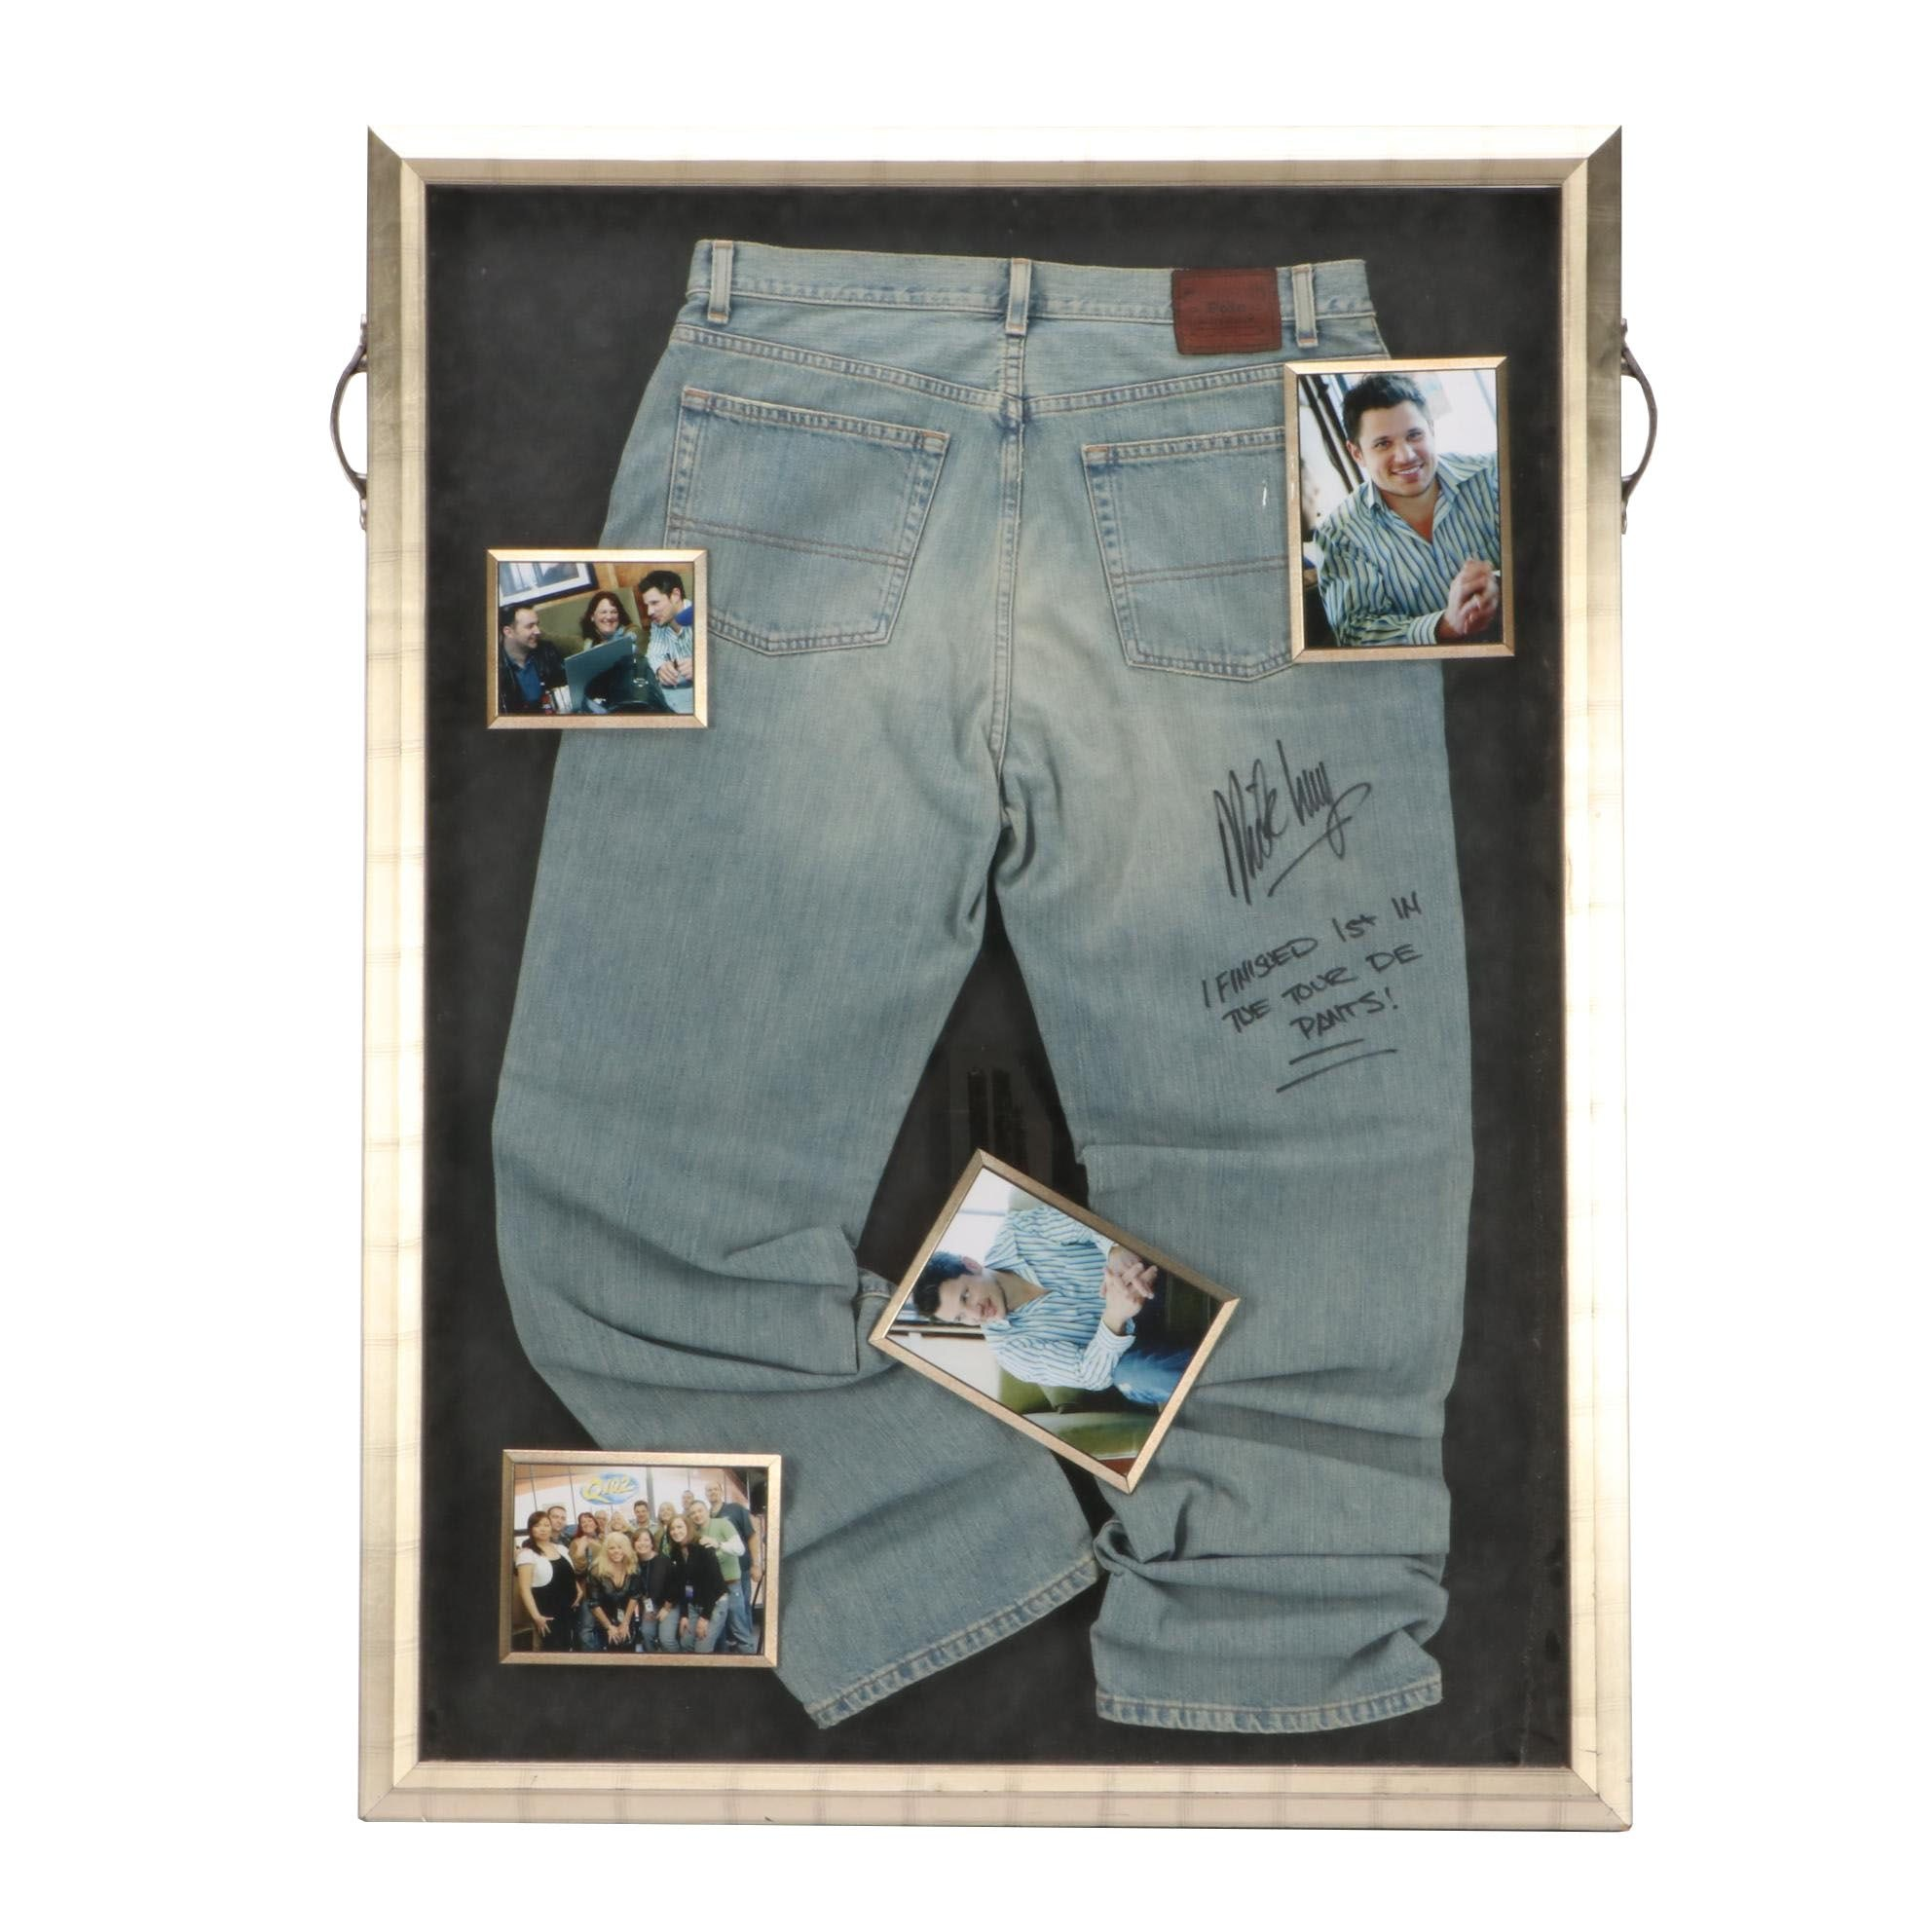 Nick Lachey Signed Worn Jeans Framed Display COA